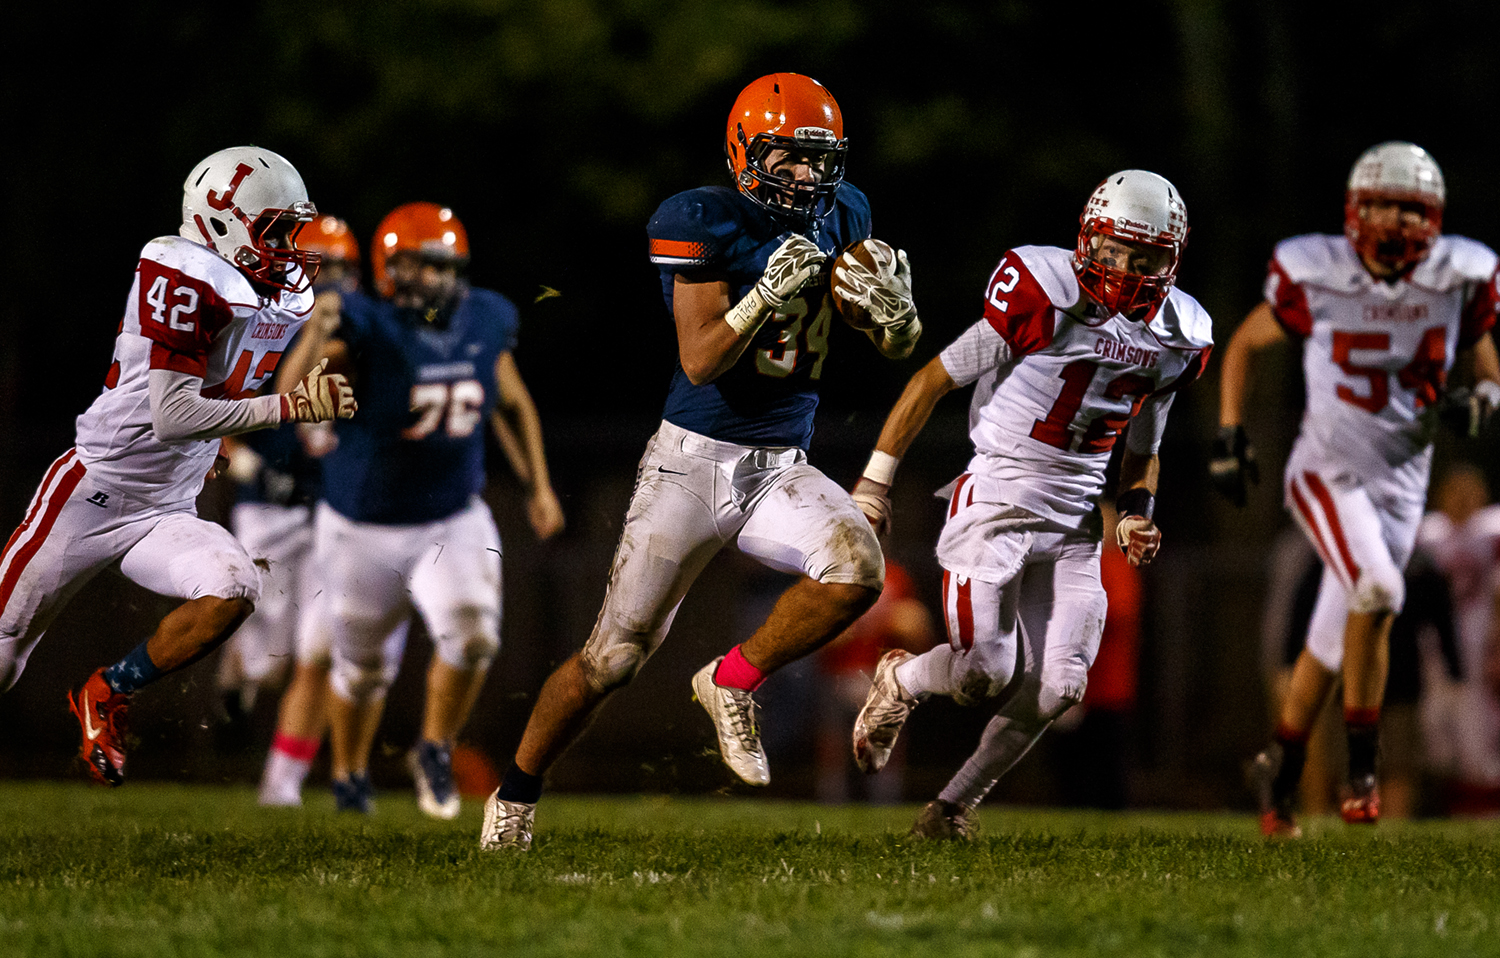 Rochester's Evan Sembell (34) breaks free on a 60-yard run against Jacksonville during the first half at Rocket Booster Field, Friday, Oct. 10, 2014, in Rochester, Ill. Justin L. Fowler/The State Journal-Register